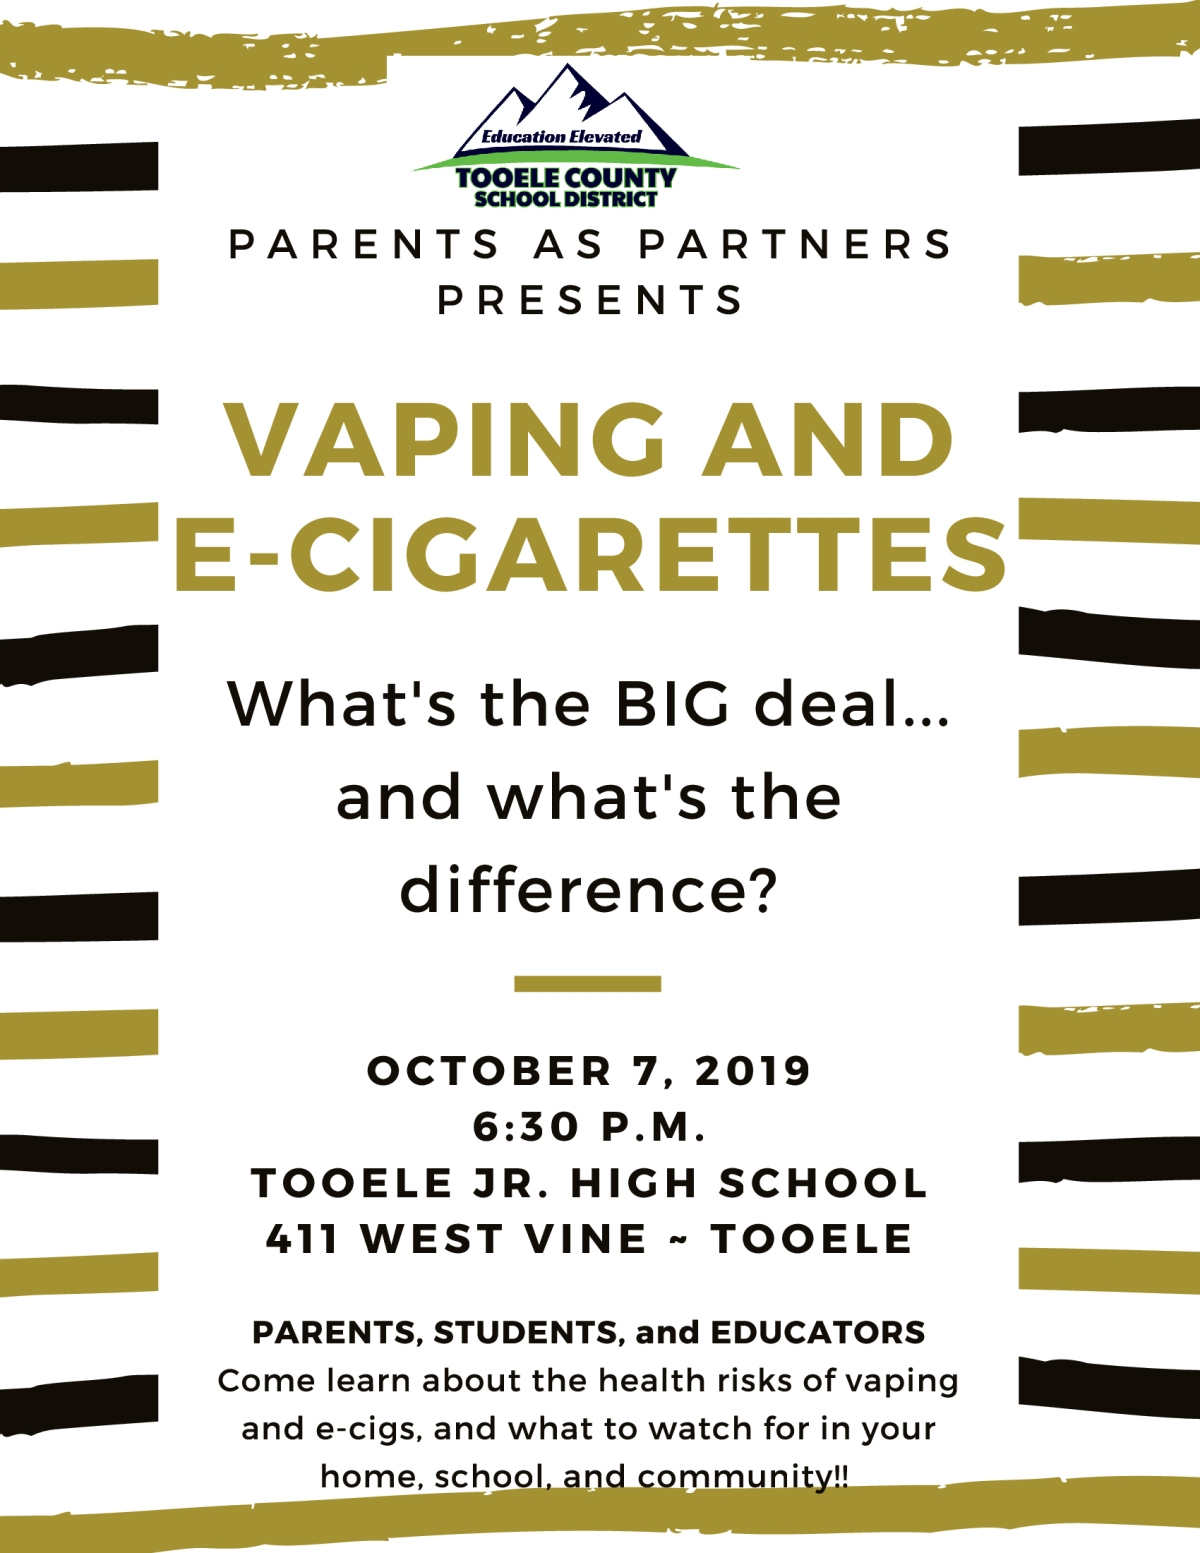 Vaping and E-Cigarettes - Parents as Partners @ Tooele Jr. High School